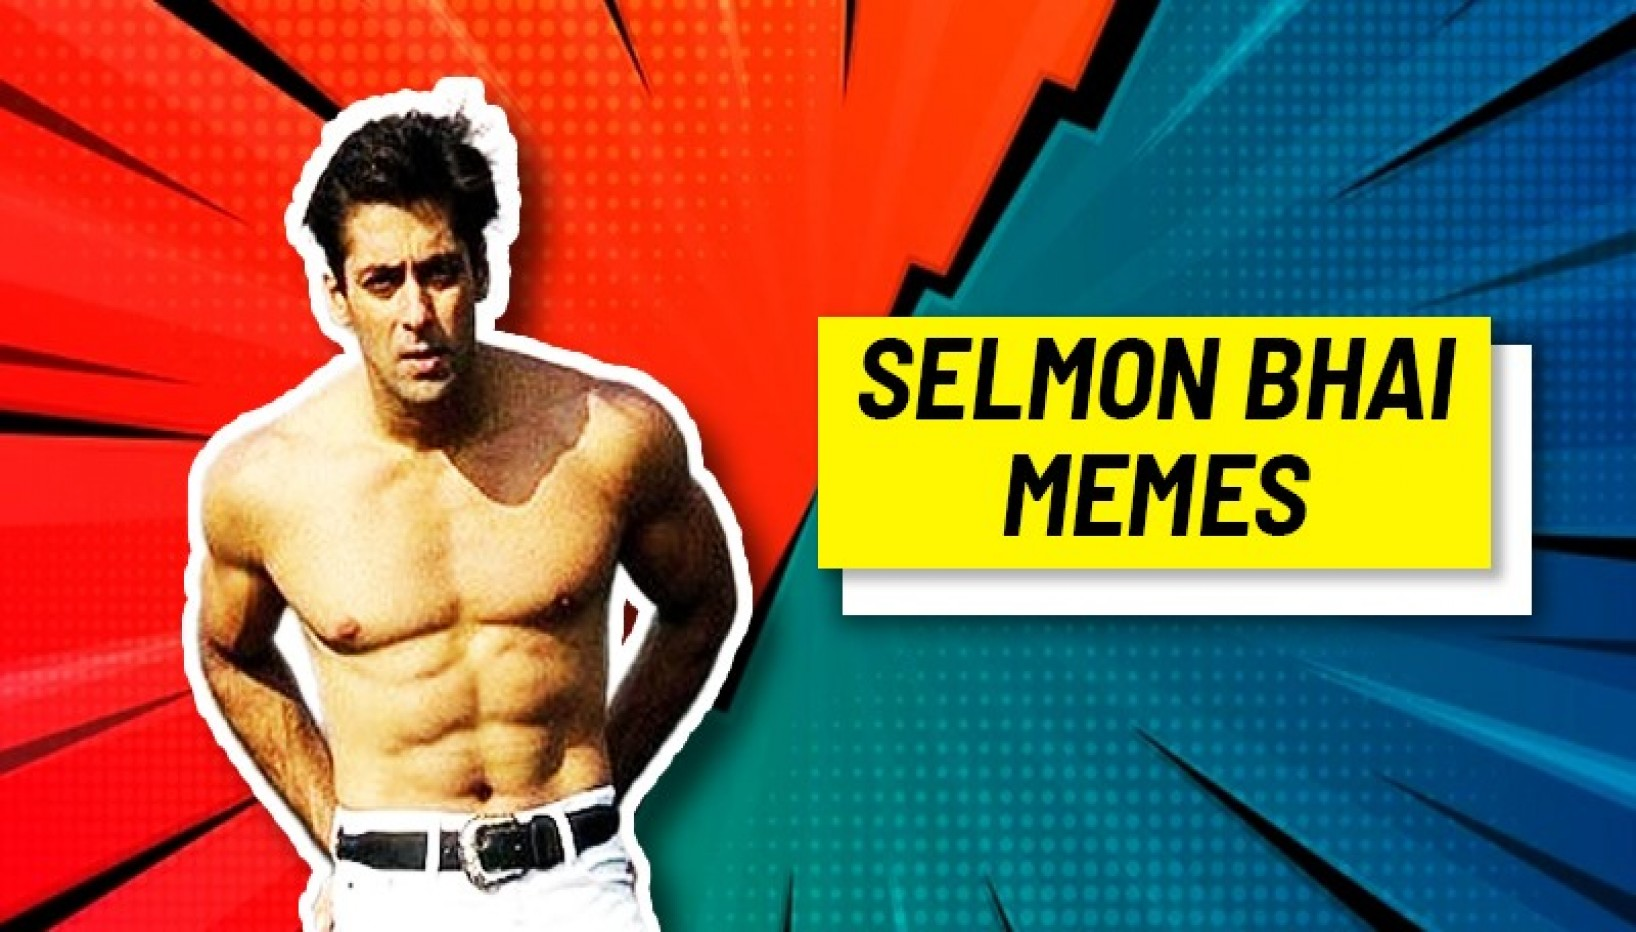 15 Selmon Bhoi Tweets And Memes That Are Better Than Going Out Over The Weekend